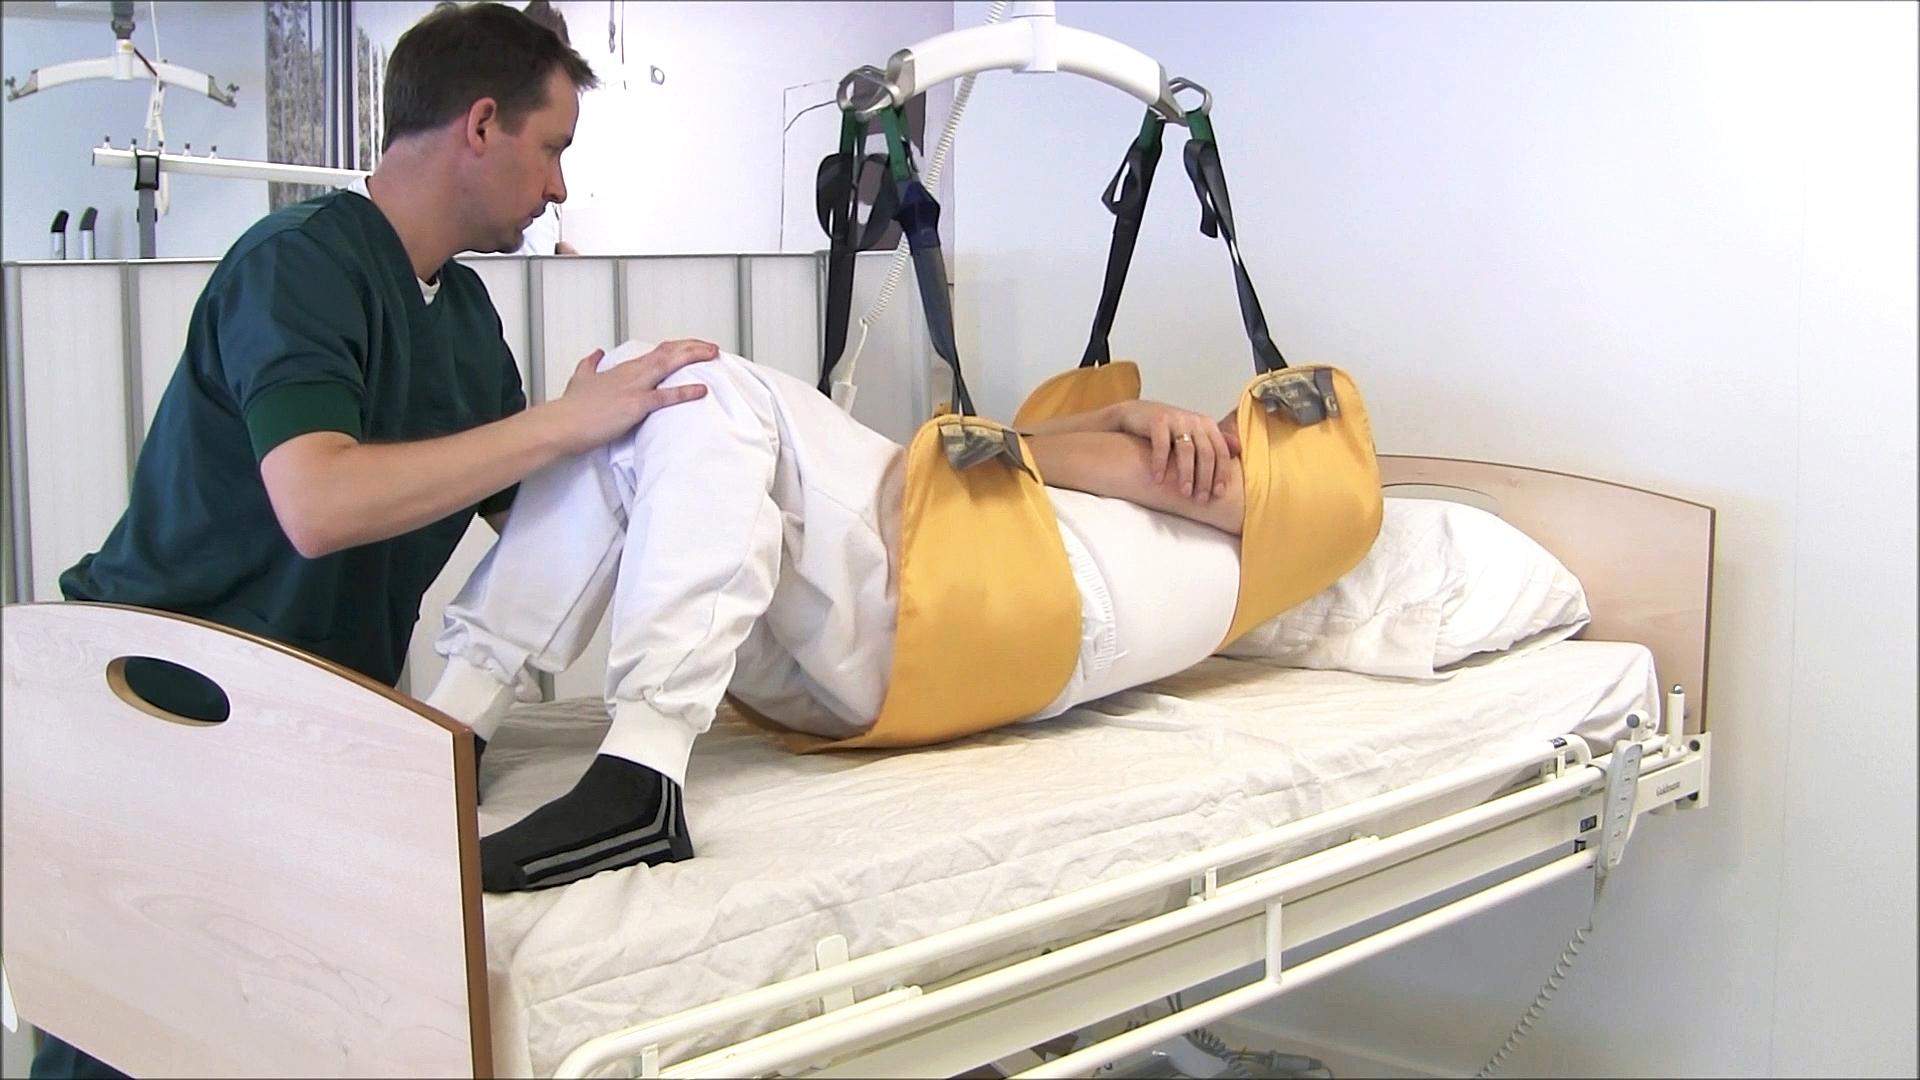 Multi Support sling learning video - How to use the Multi Support sling to move a patient higher up in bed - part 2